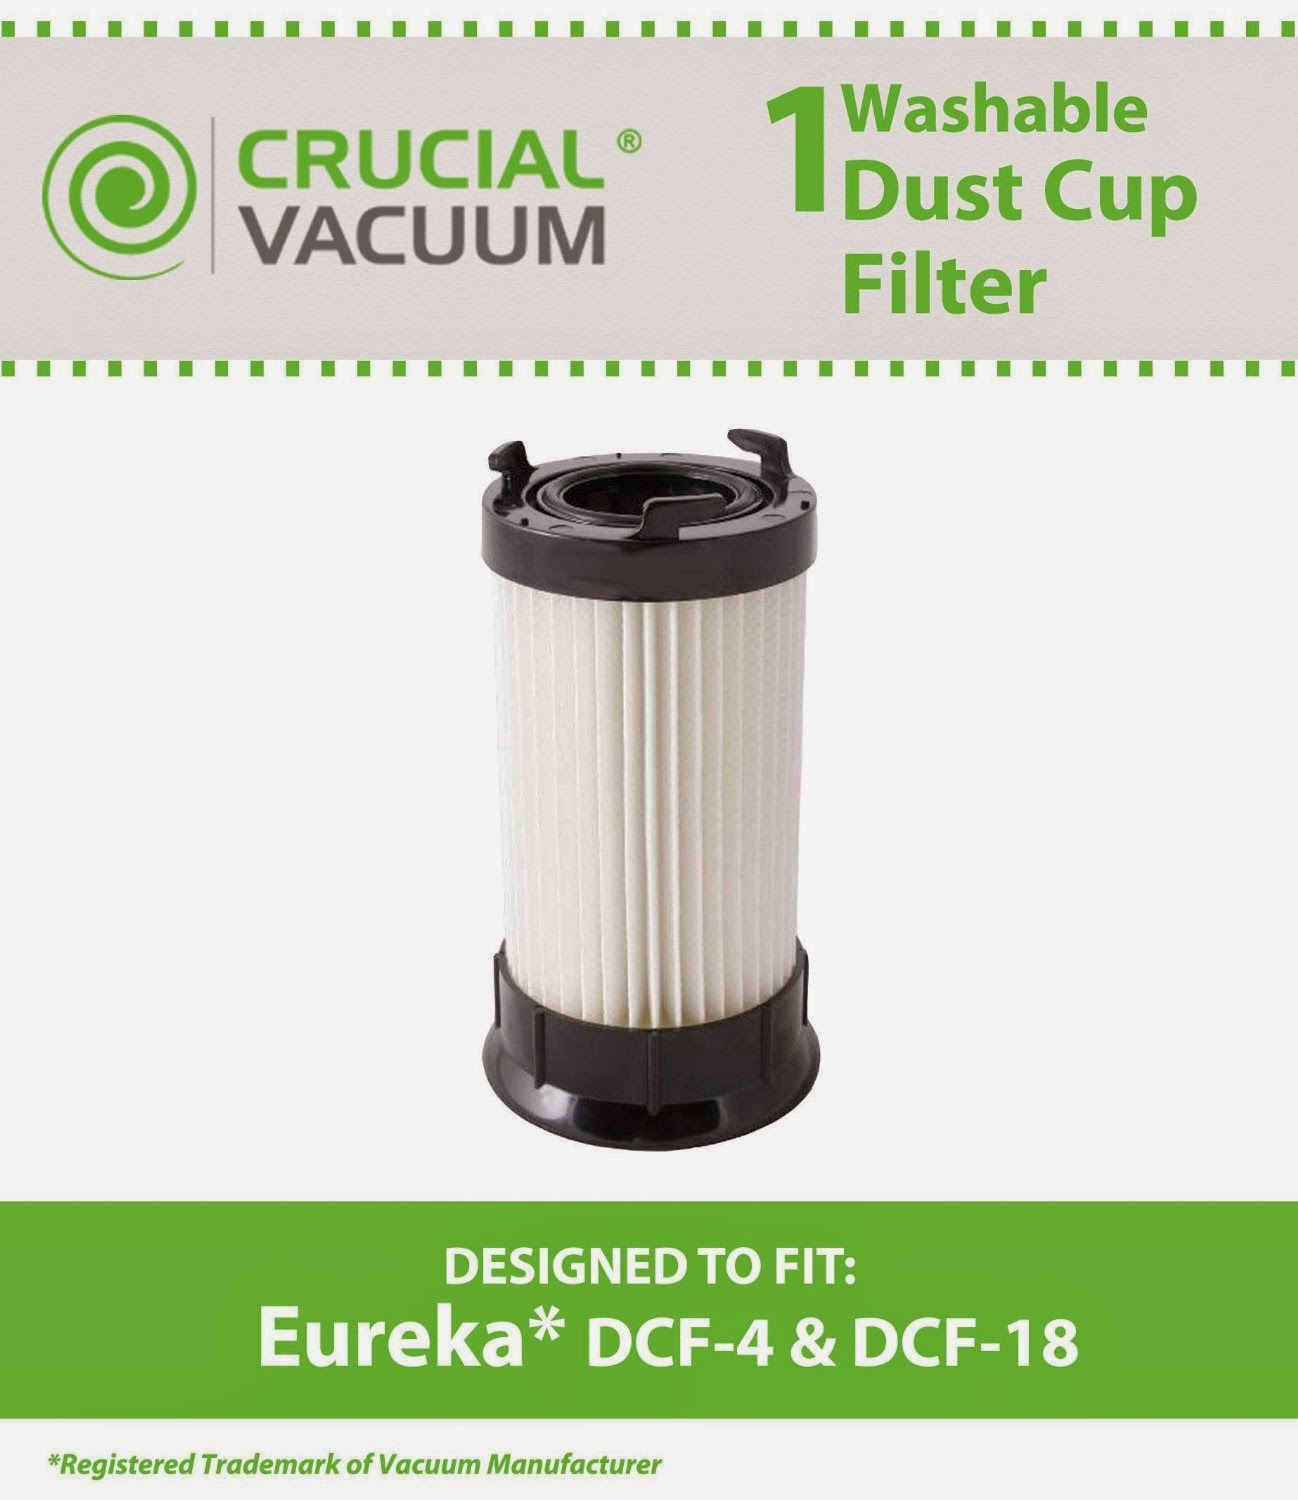 eureka washable and reusable longlife vacuum filter - Eureka Vacuum Filters